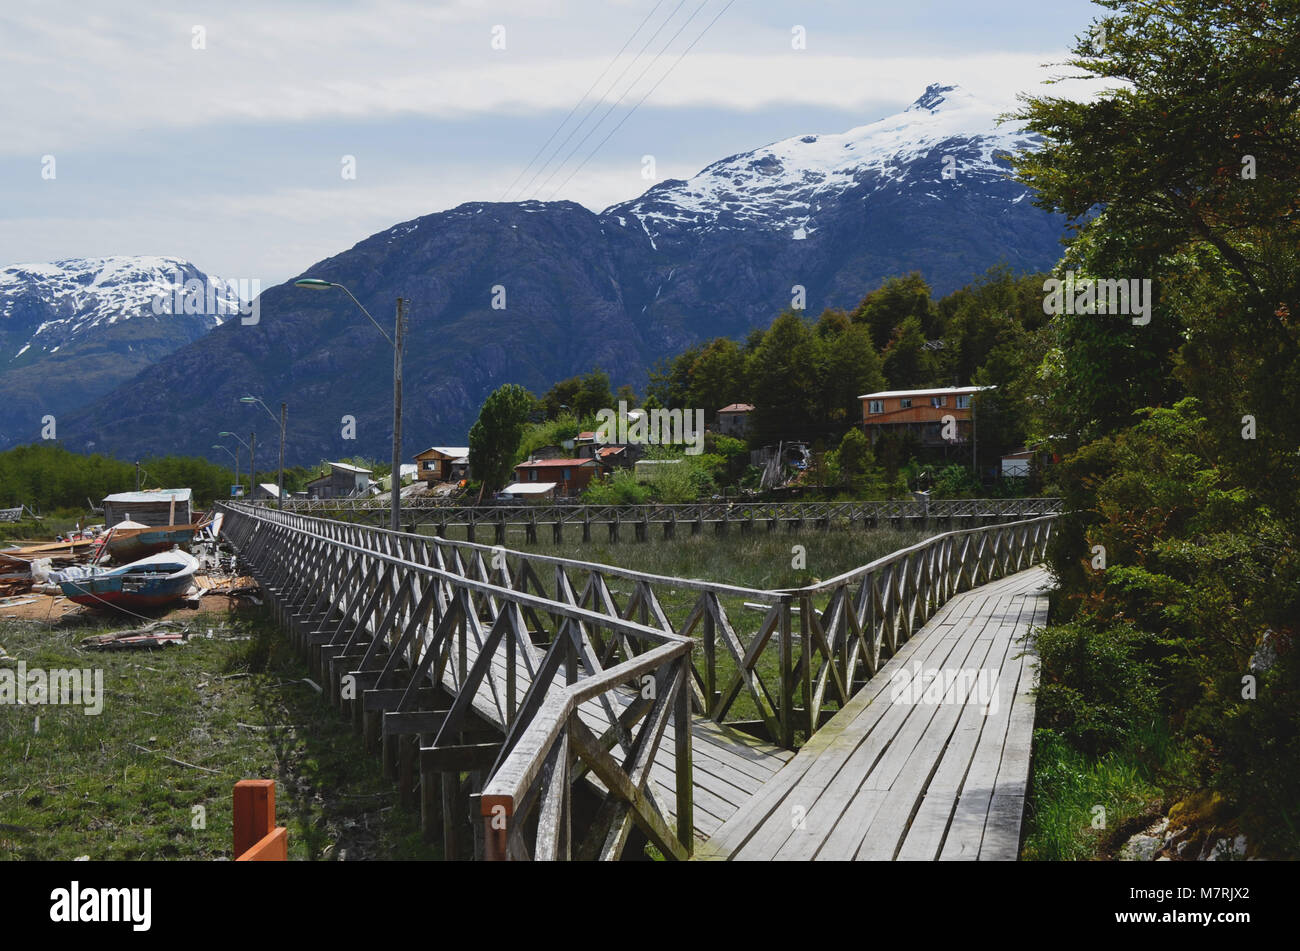 Caleta Tortel, a tiny coastal hamlet located in the midst of Aysen (Southern Chile)'s fjords - Stock Image